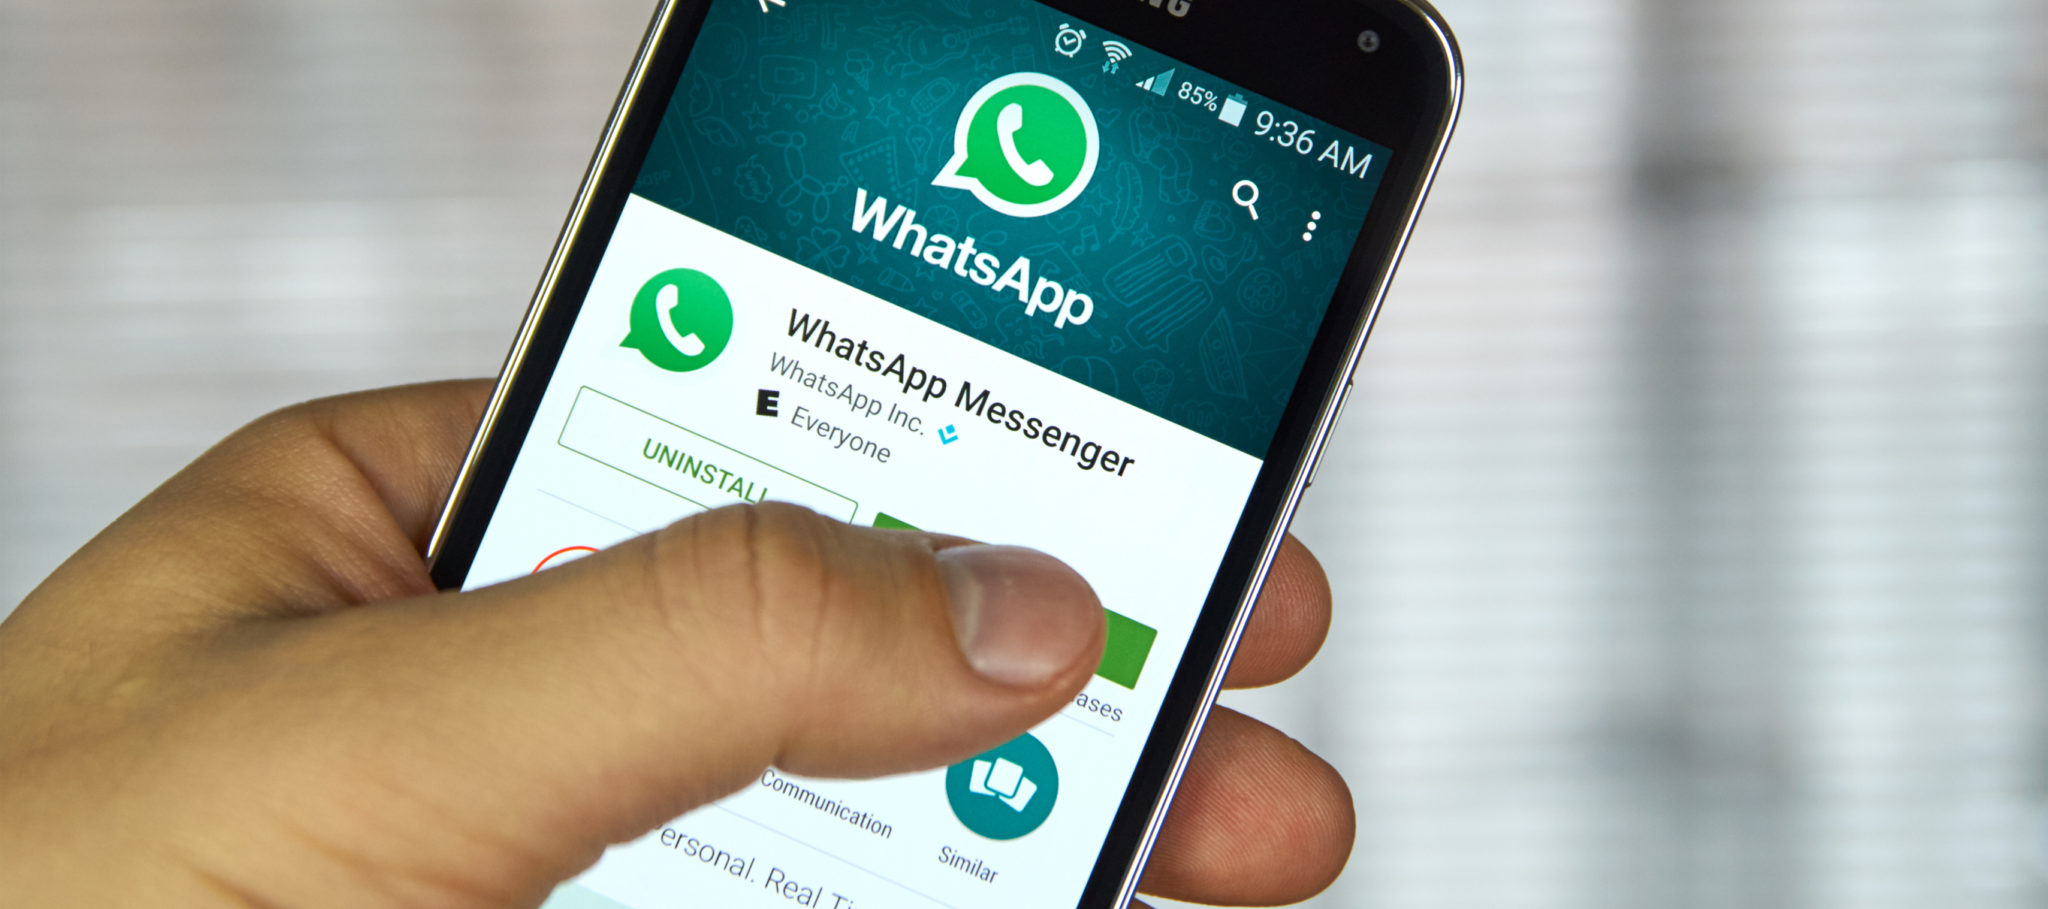 WhatsApp spyware attack: Everything you need to know